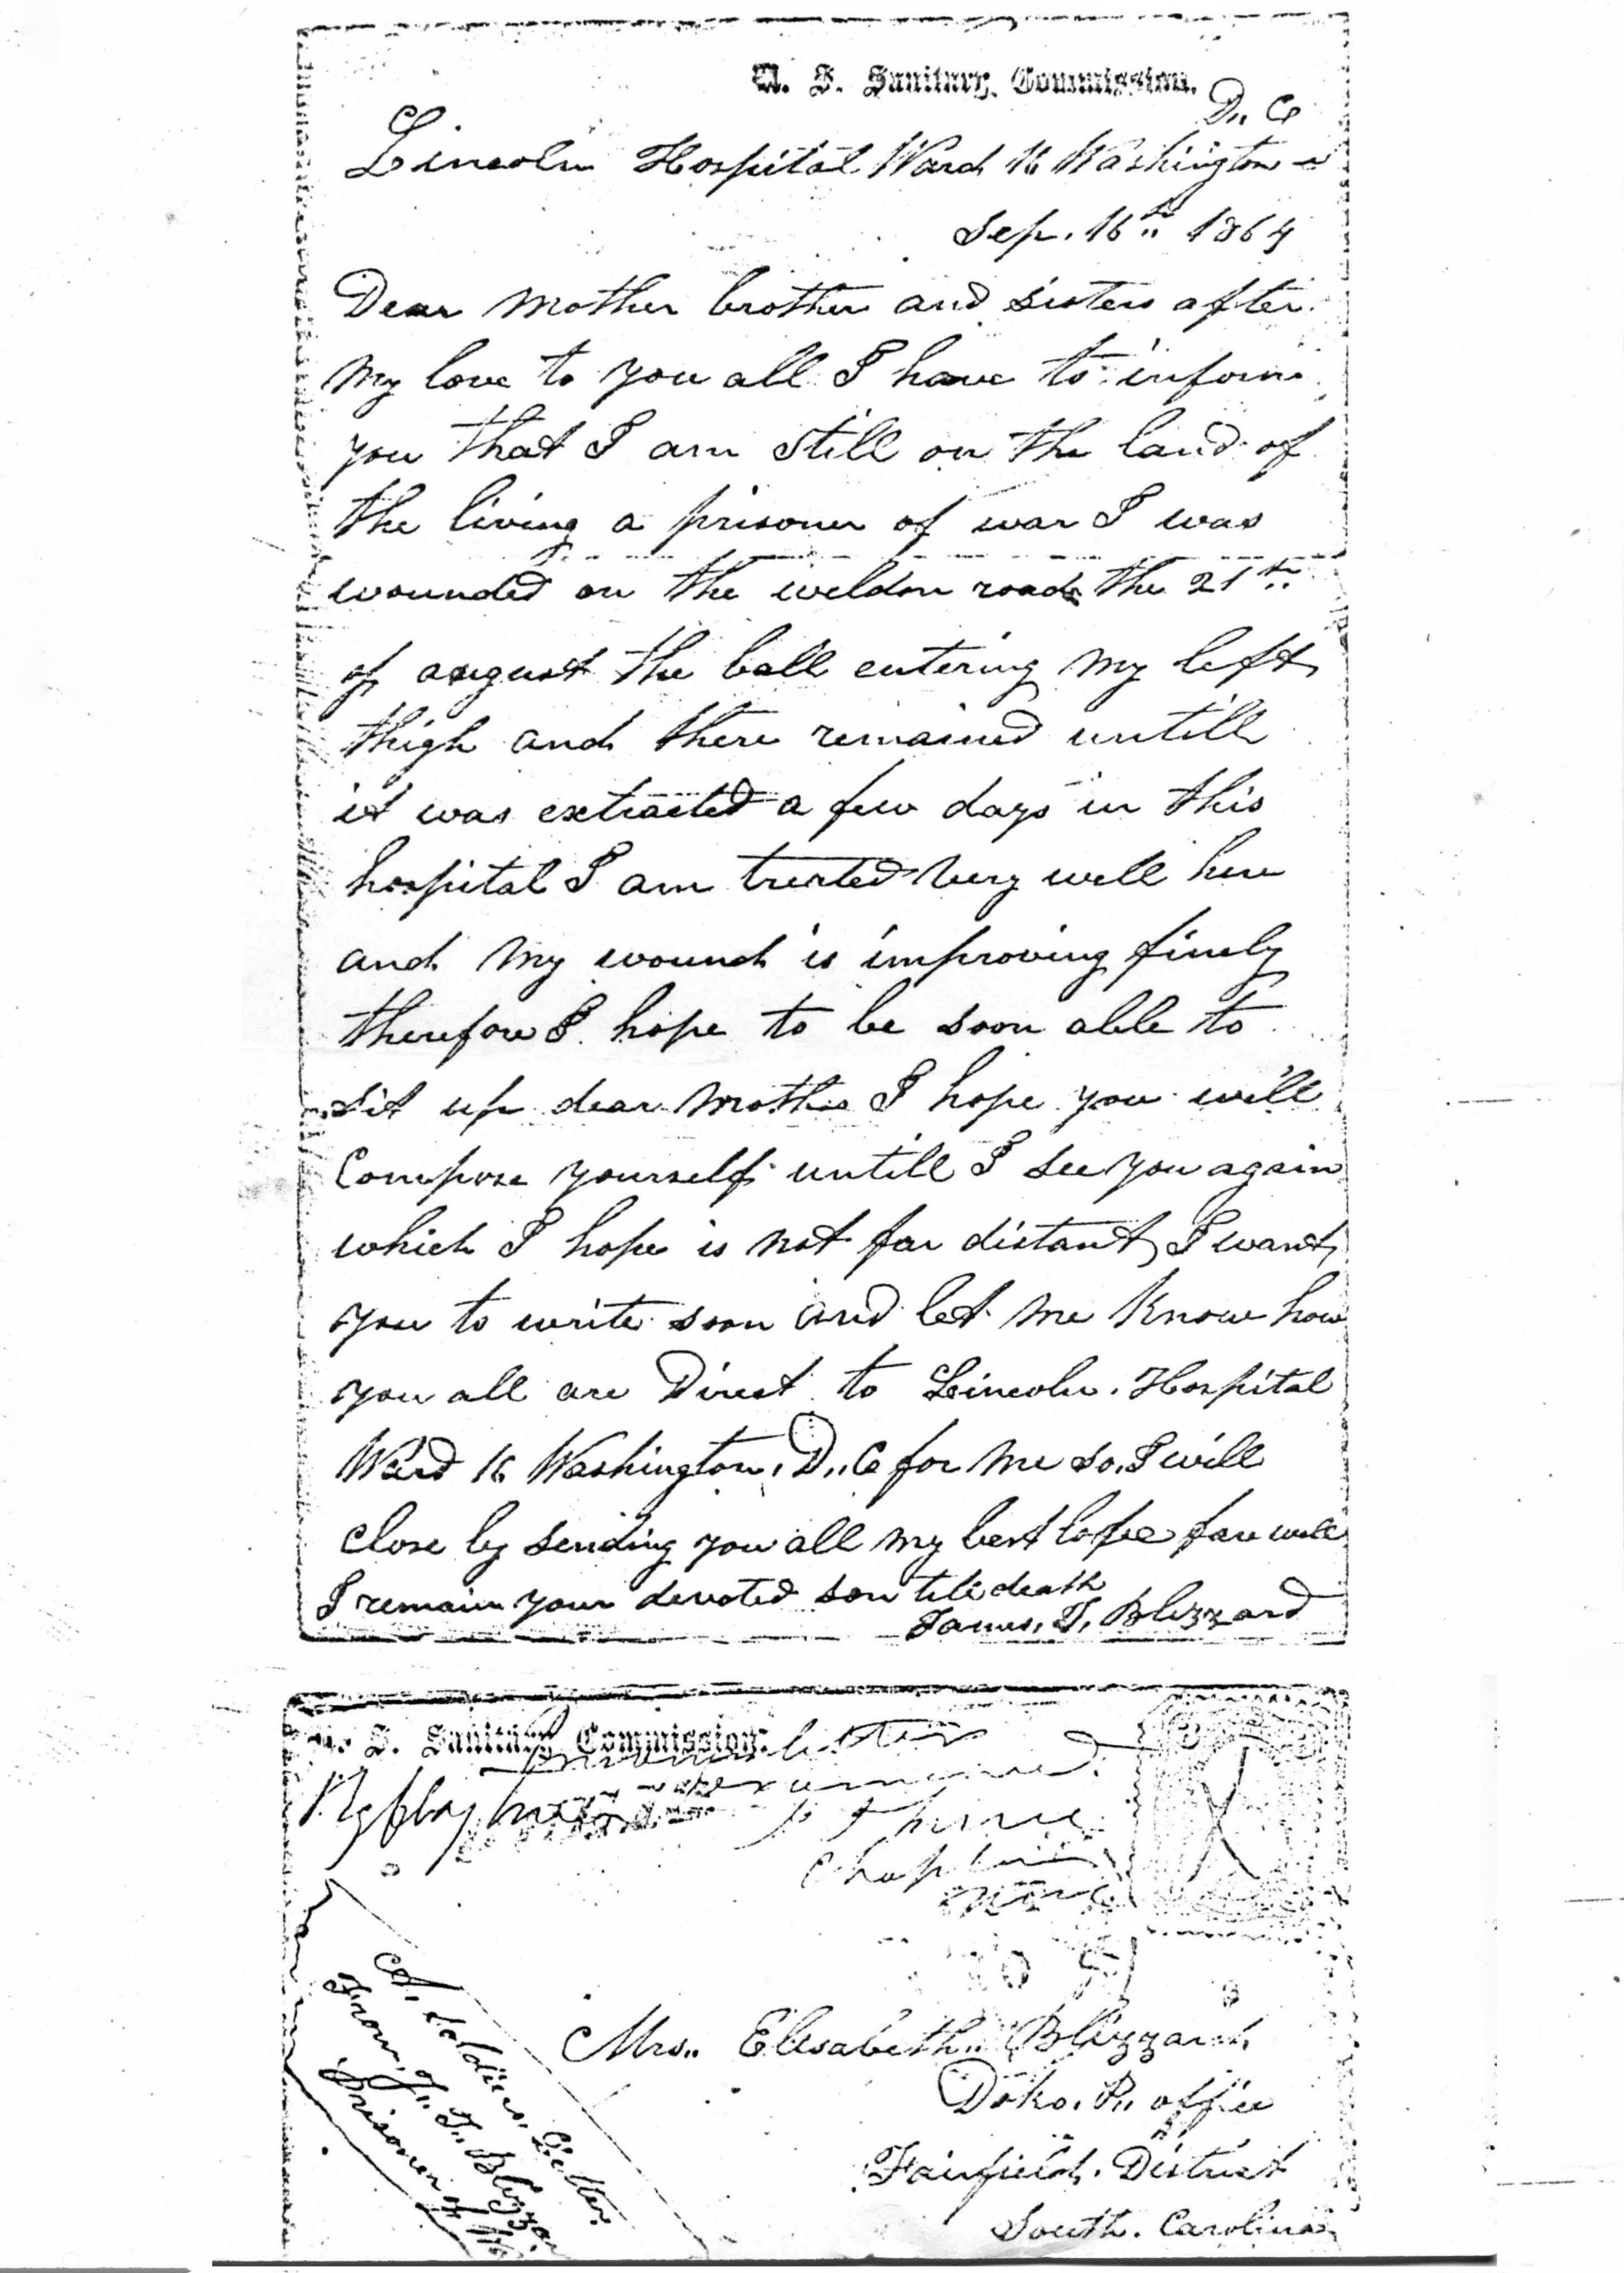 Letter from James Blizzard to his mother. He was a POW during Civil War and a member of Sandy Level Baptist Church.